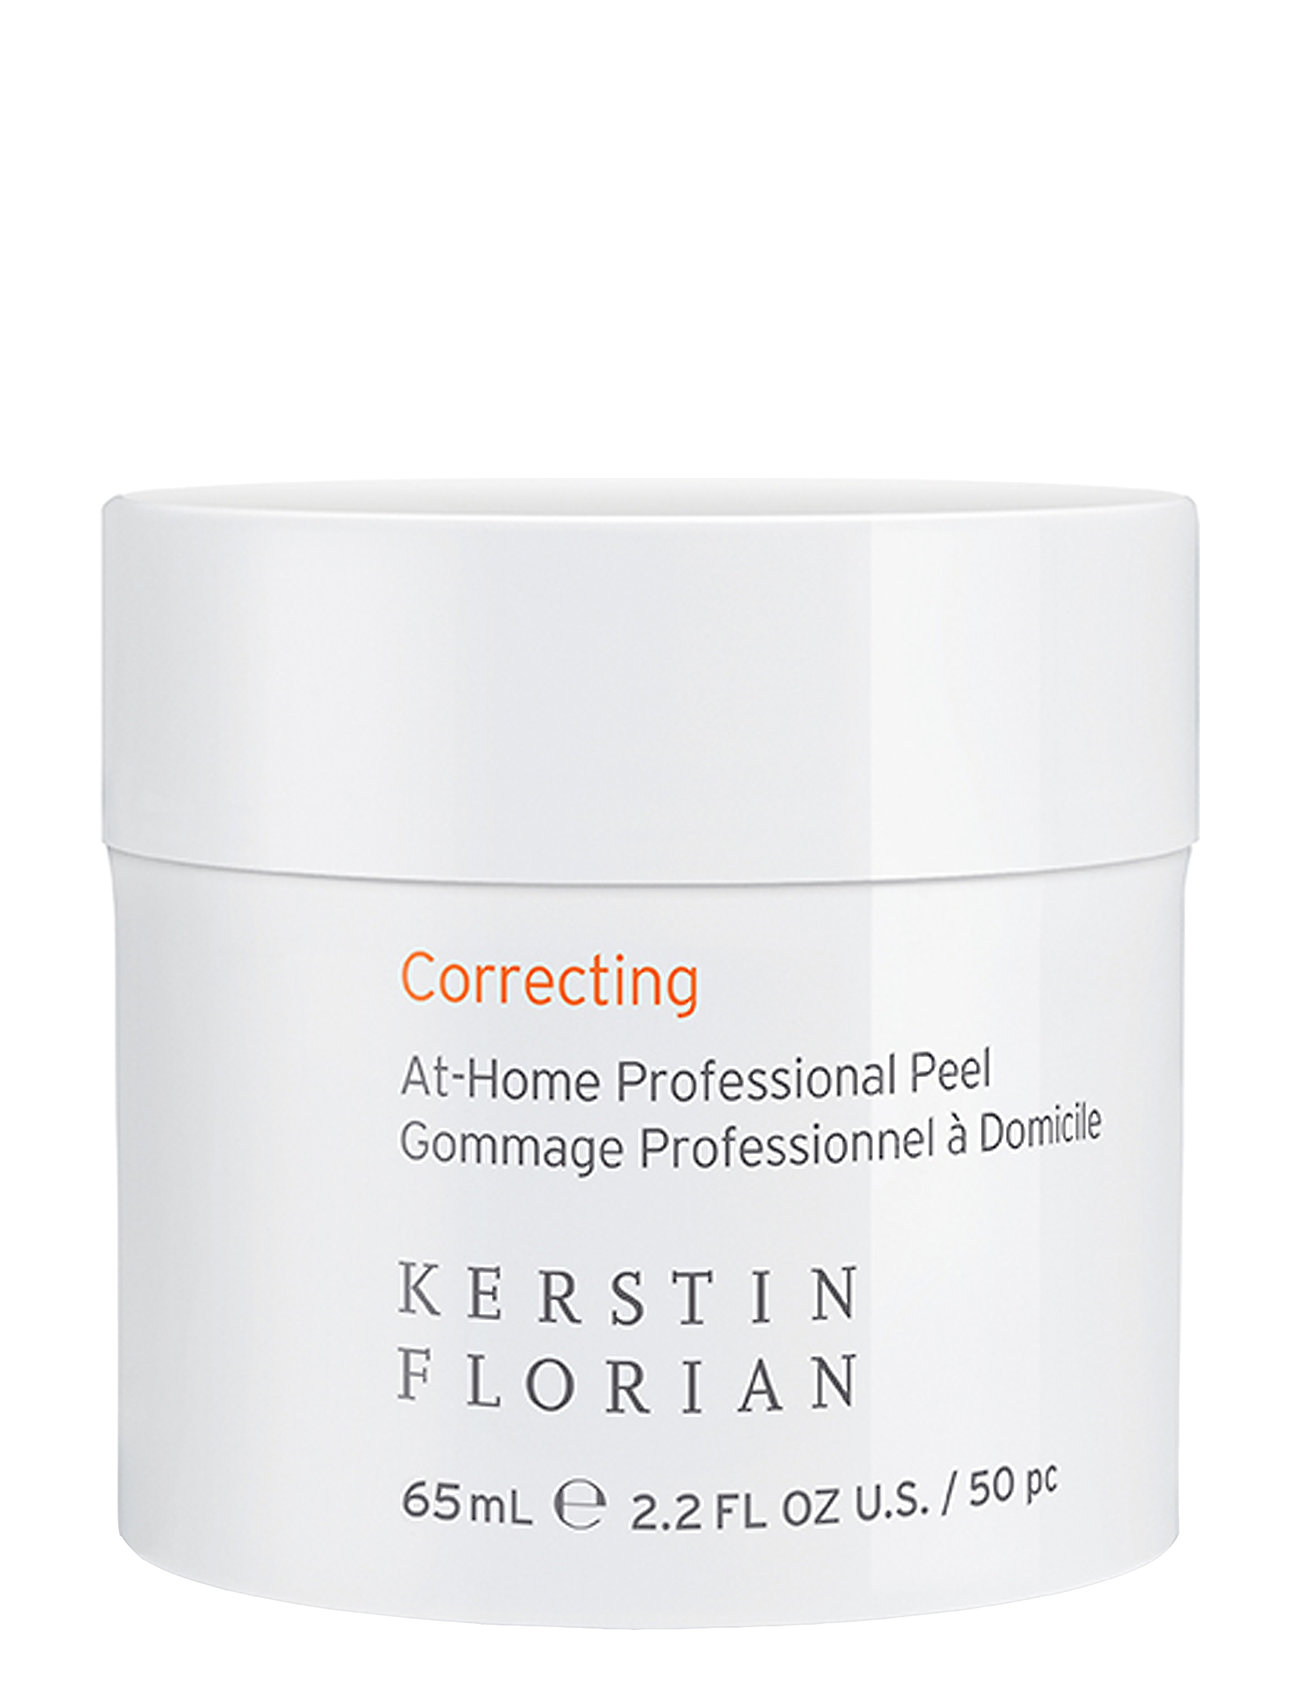 Image of Correcting At-Home Professional Peel Beauty WOMEN Skin Care Face Peelings Nude Kerstin Florian (3333557931)